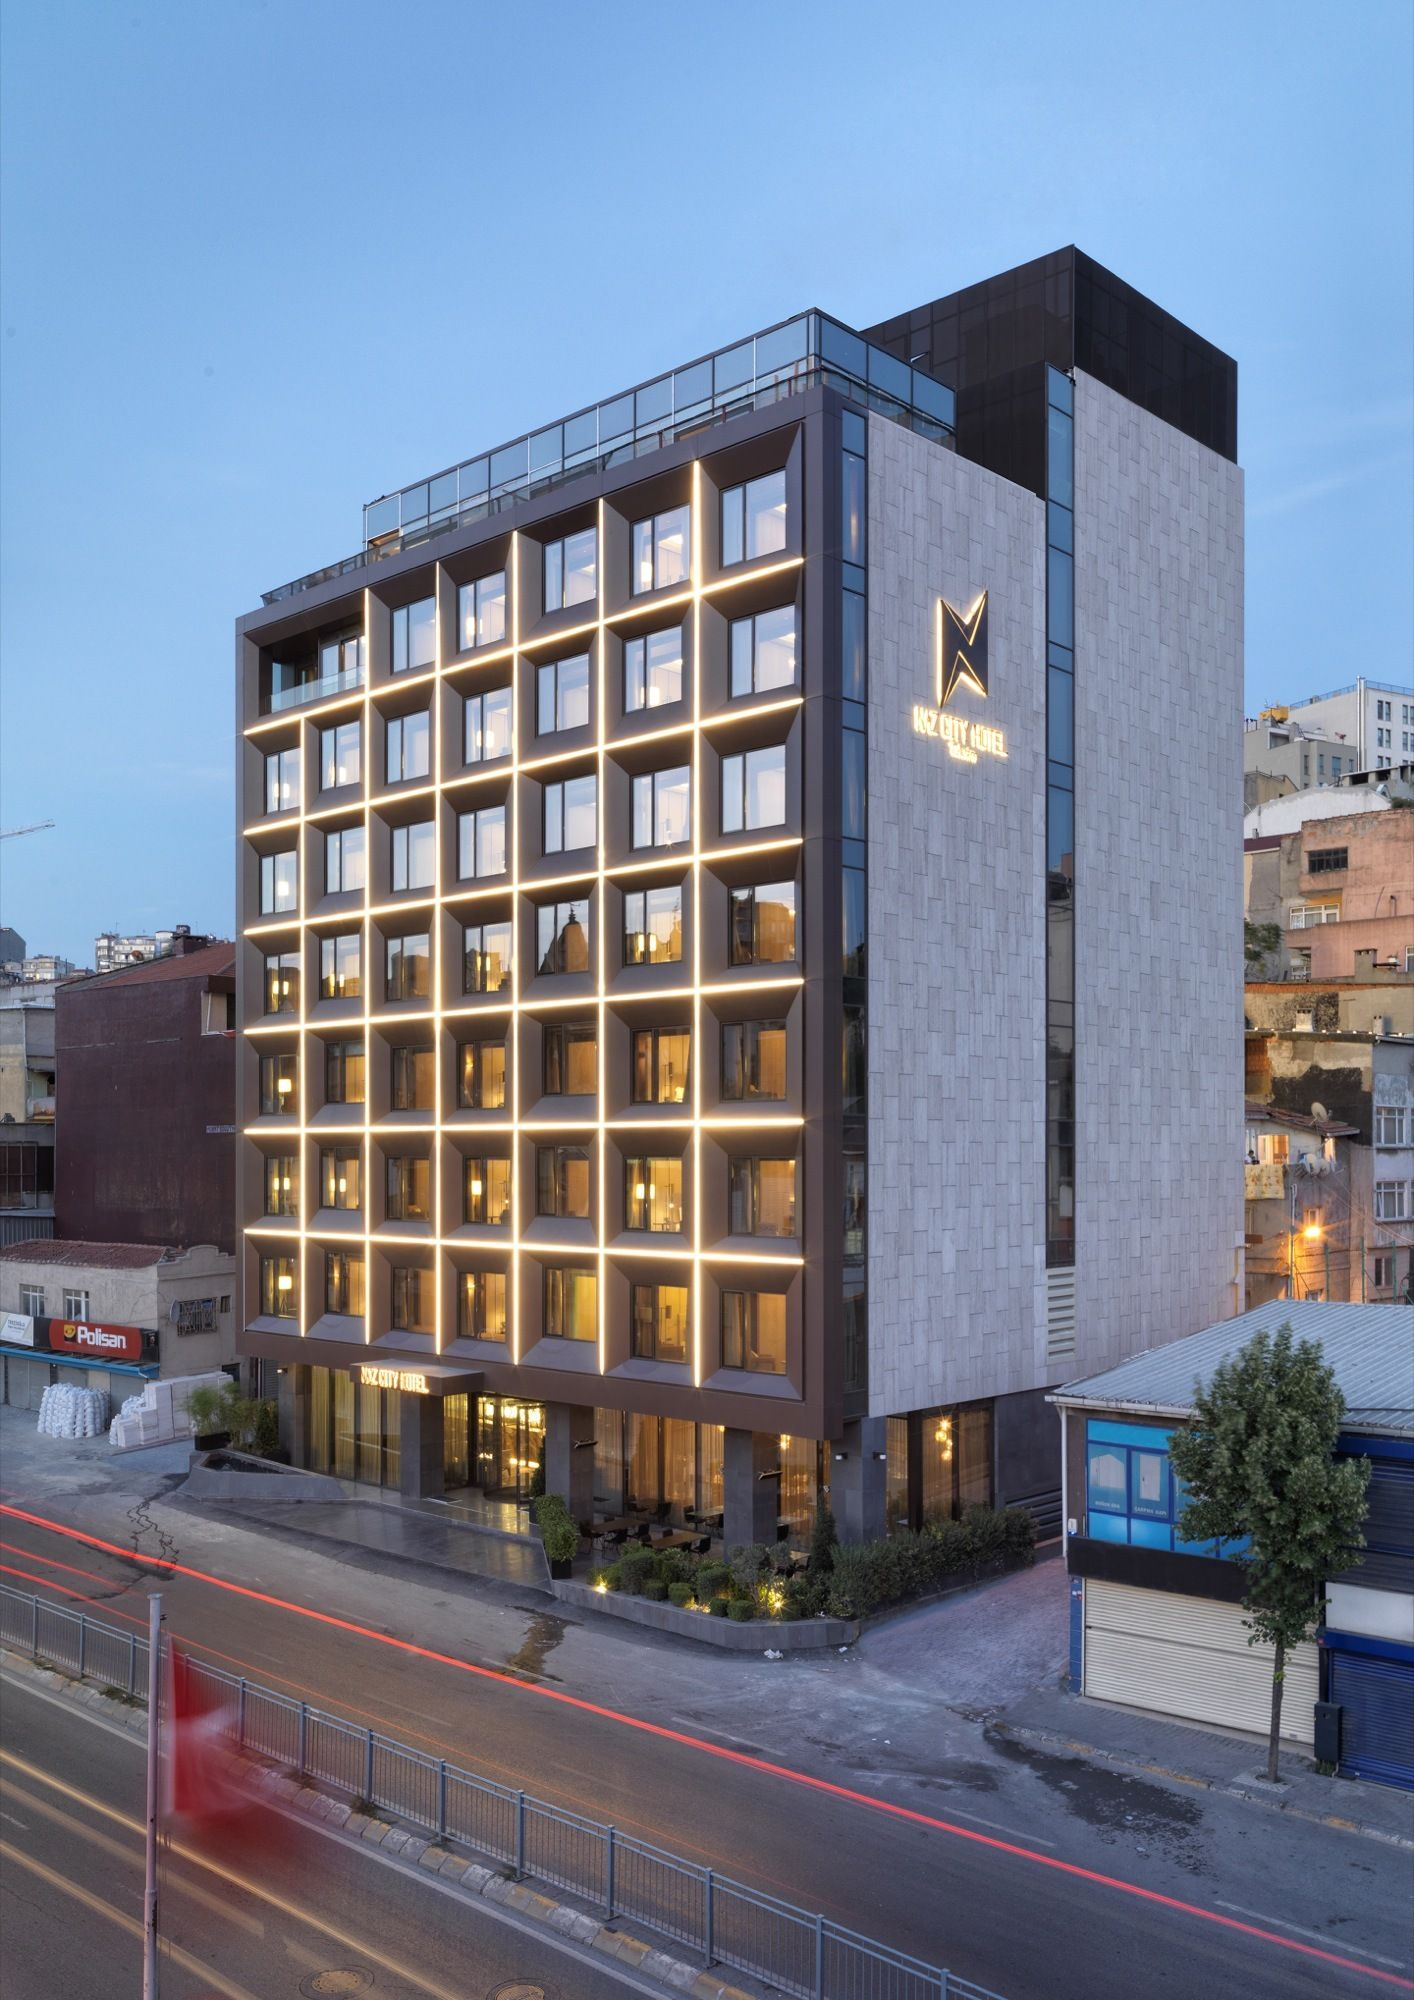 Gallery of naz city hotel taksim metex design group 1 for Design hotel group